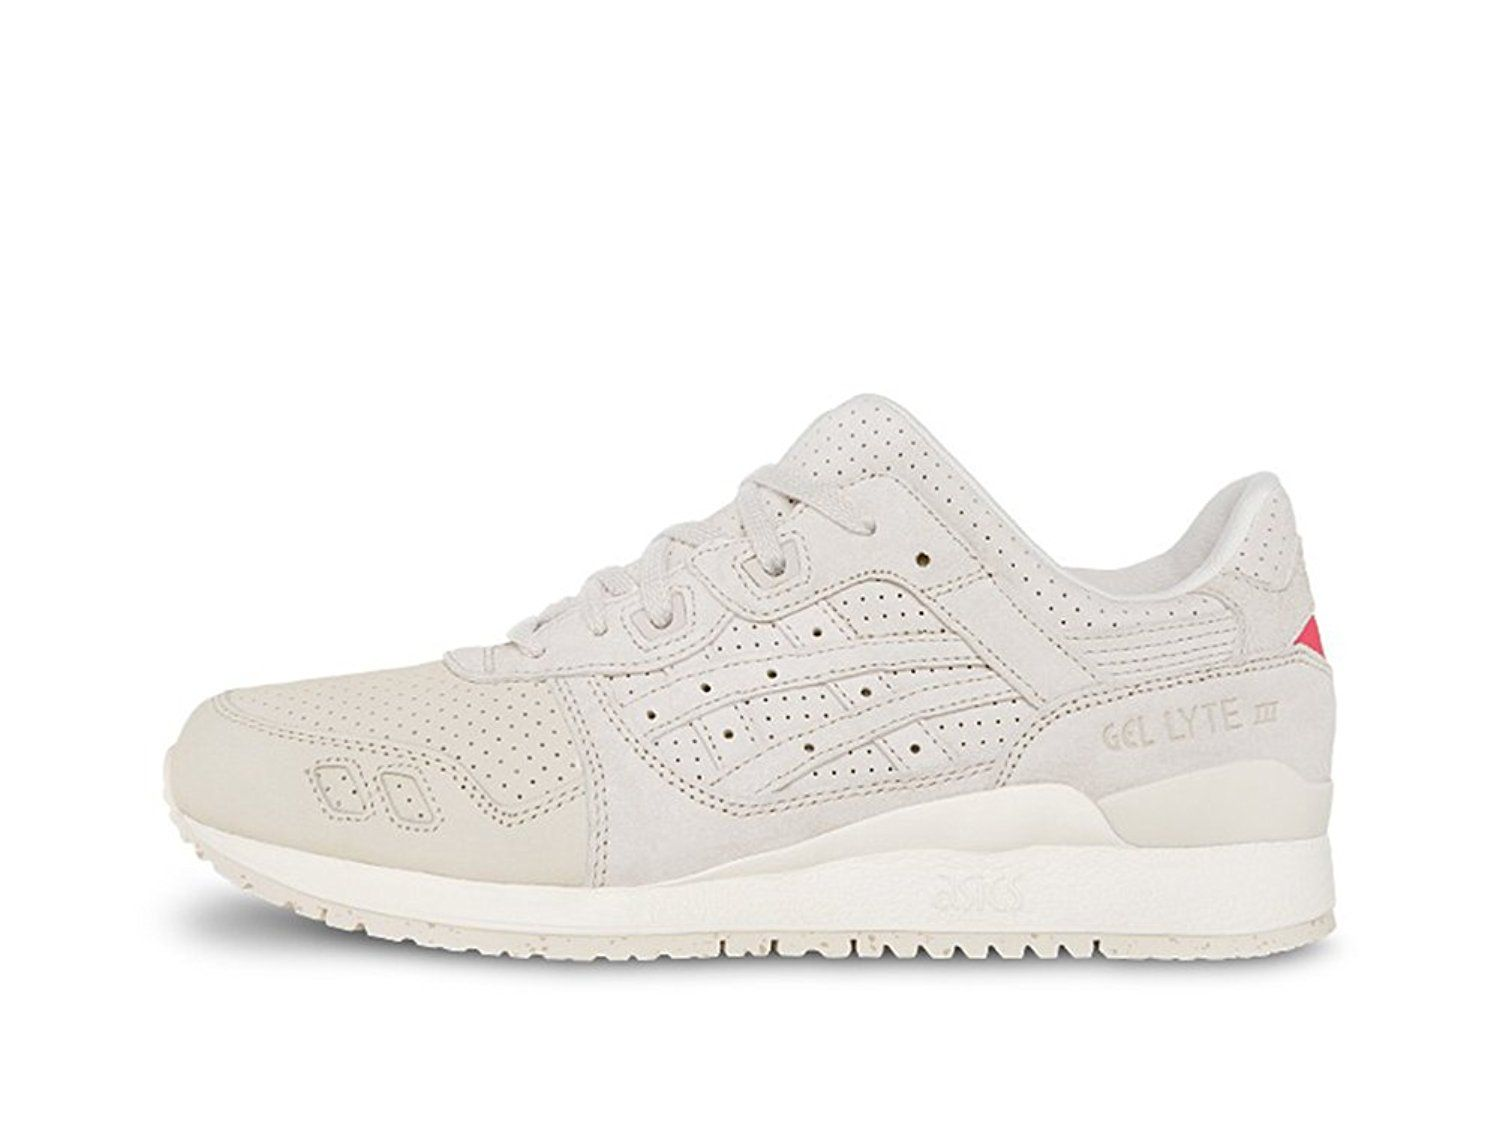 barro Mitones acción  Amazon.com | ASICS Men's Gel-Lyte III Perforated Birch/Birch H7E0L.0202 |  Fashion Sneakers | Gel lyte iii, Asics men, Asics